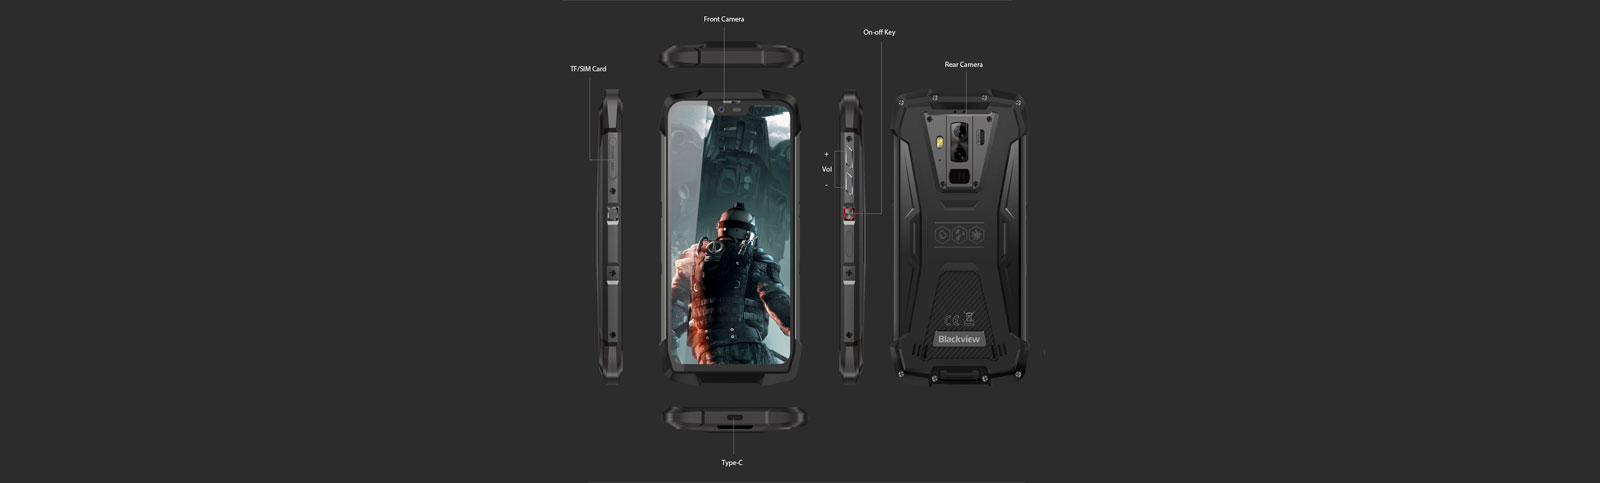 Blackview BV9700 Pro available on Indiegogo with 30% discount